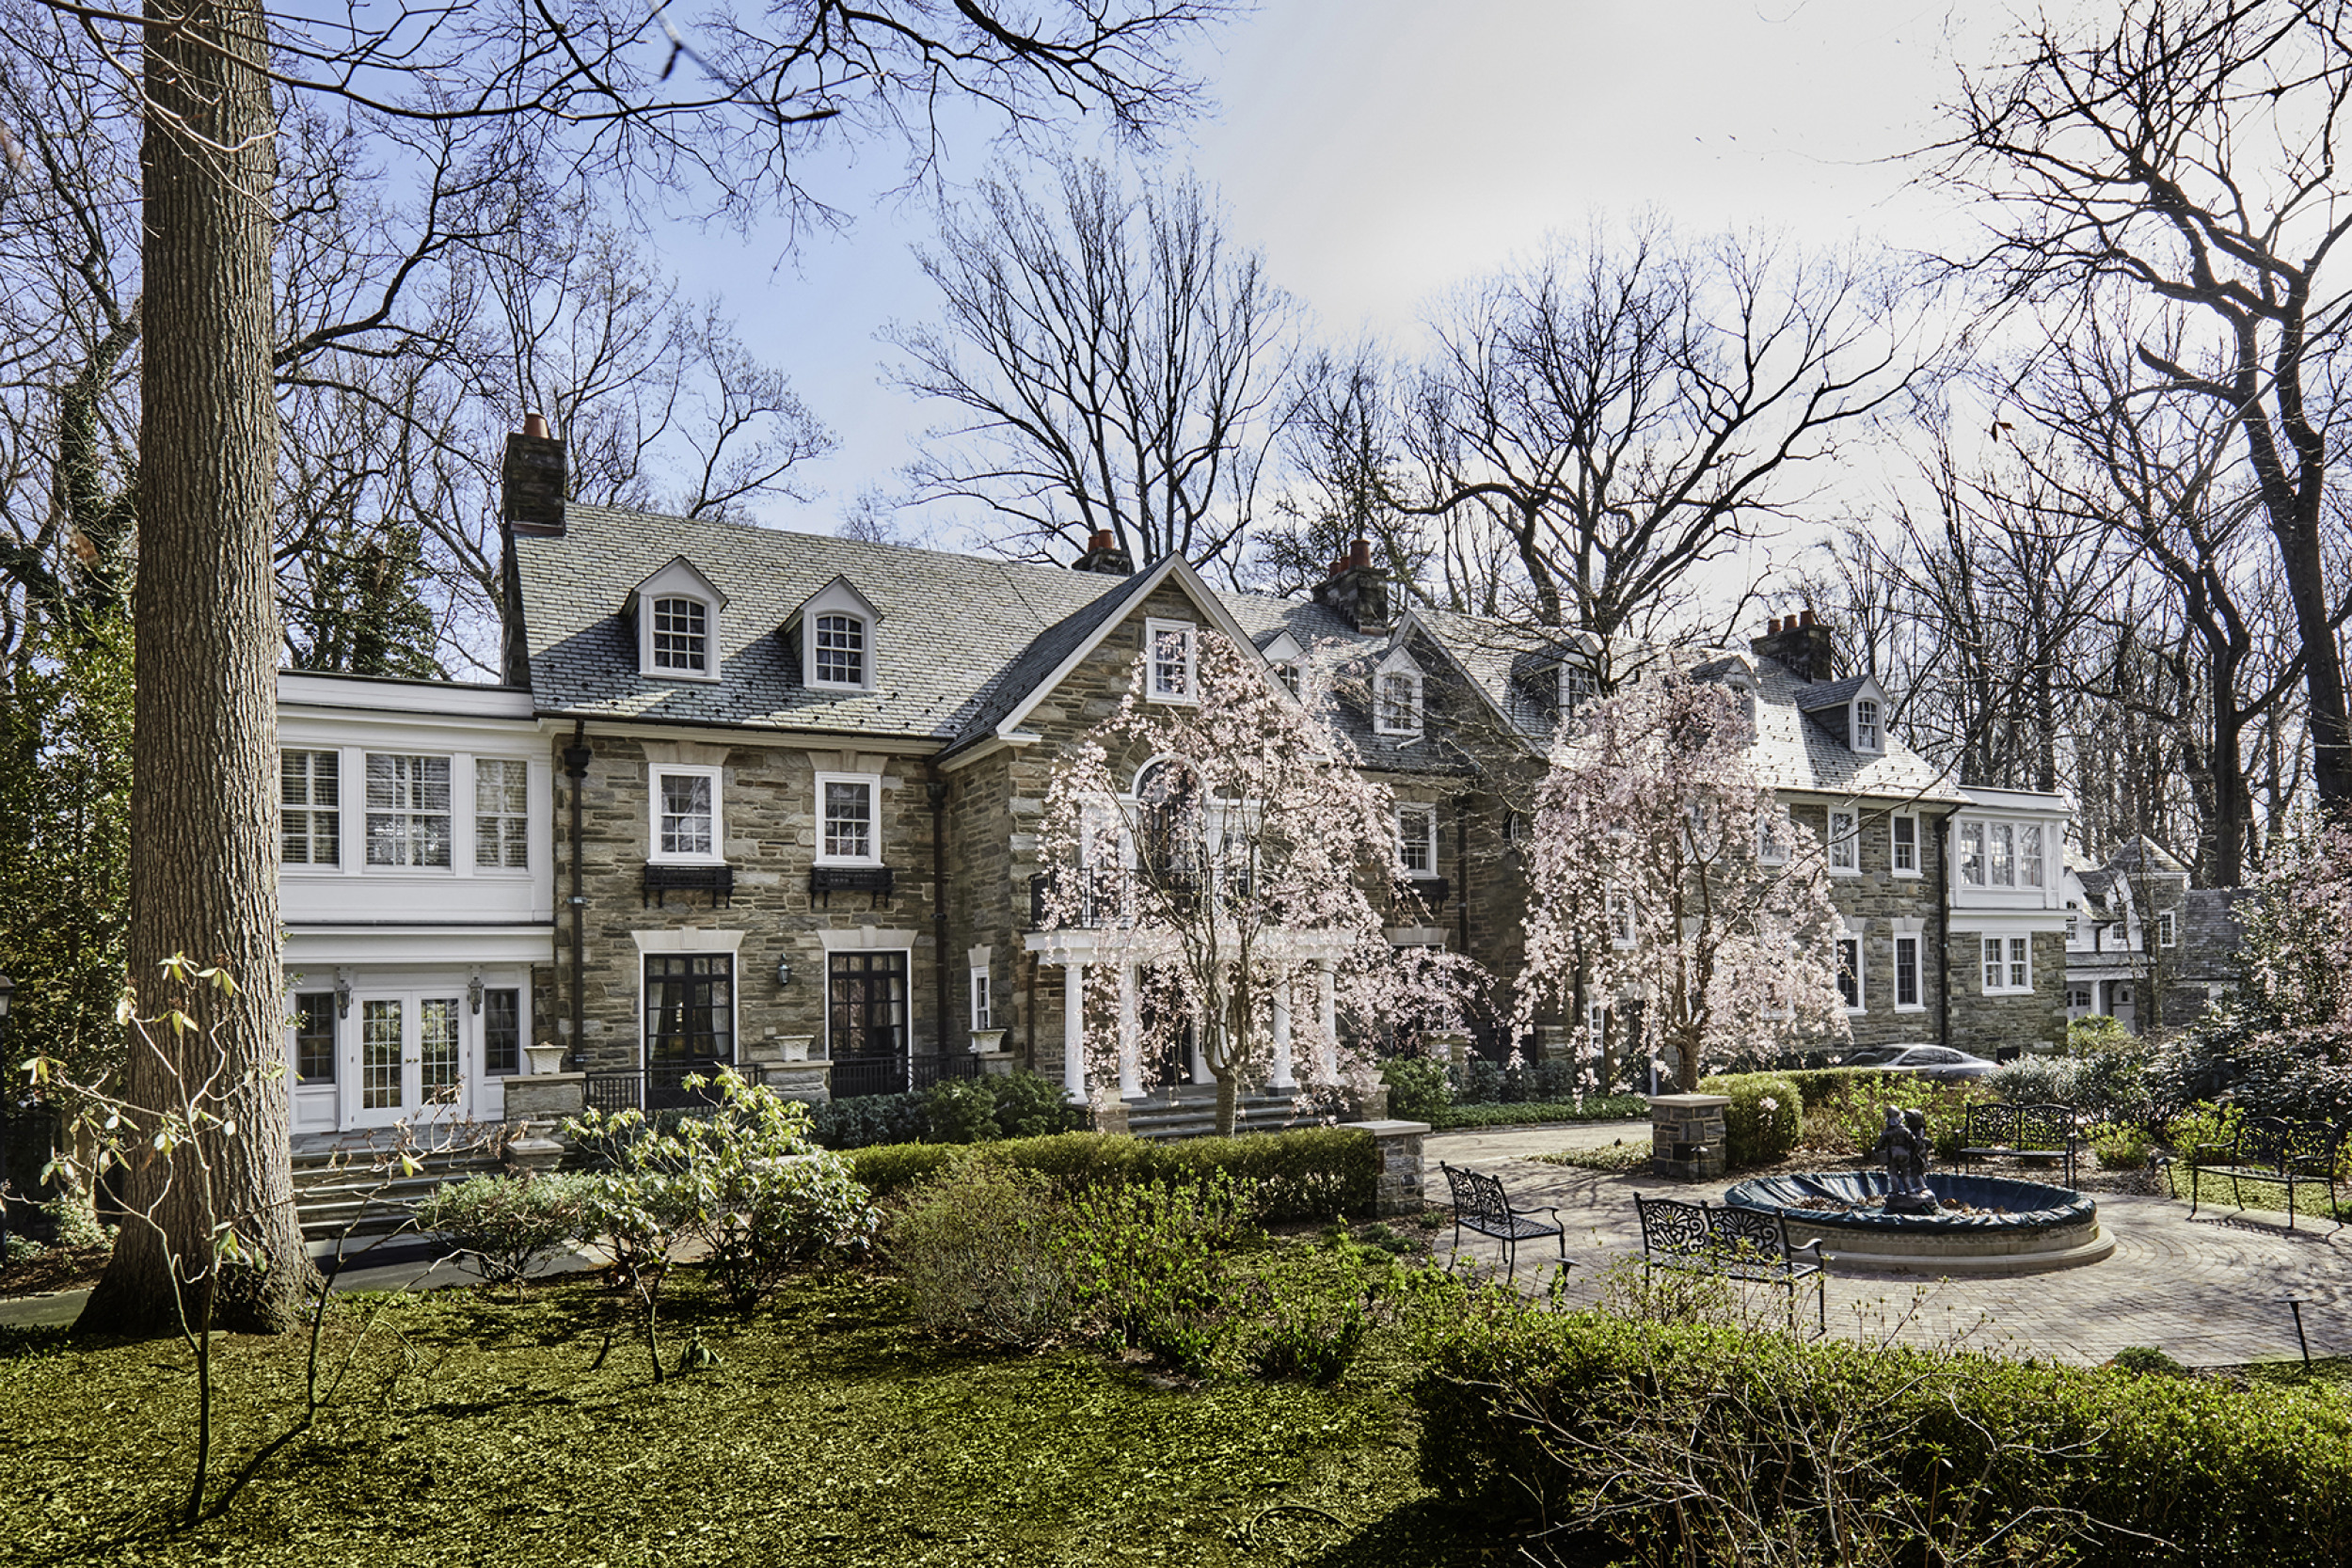 Single Family Home for Sale at Stately Stone Mansion 489 UPPER GULPH RD Radnor, Pennsylvania 19087 United States